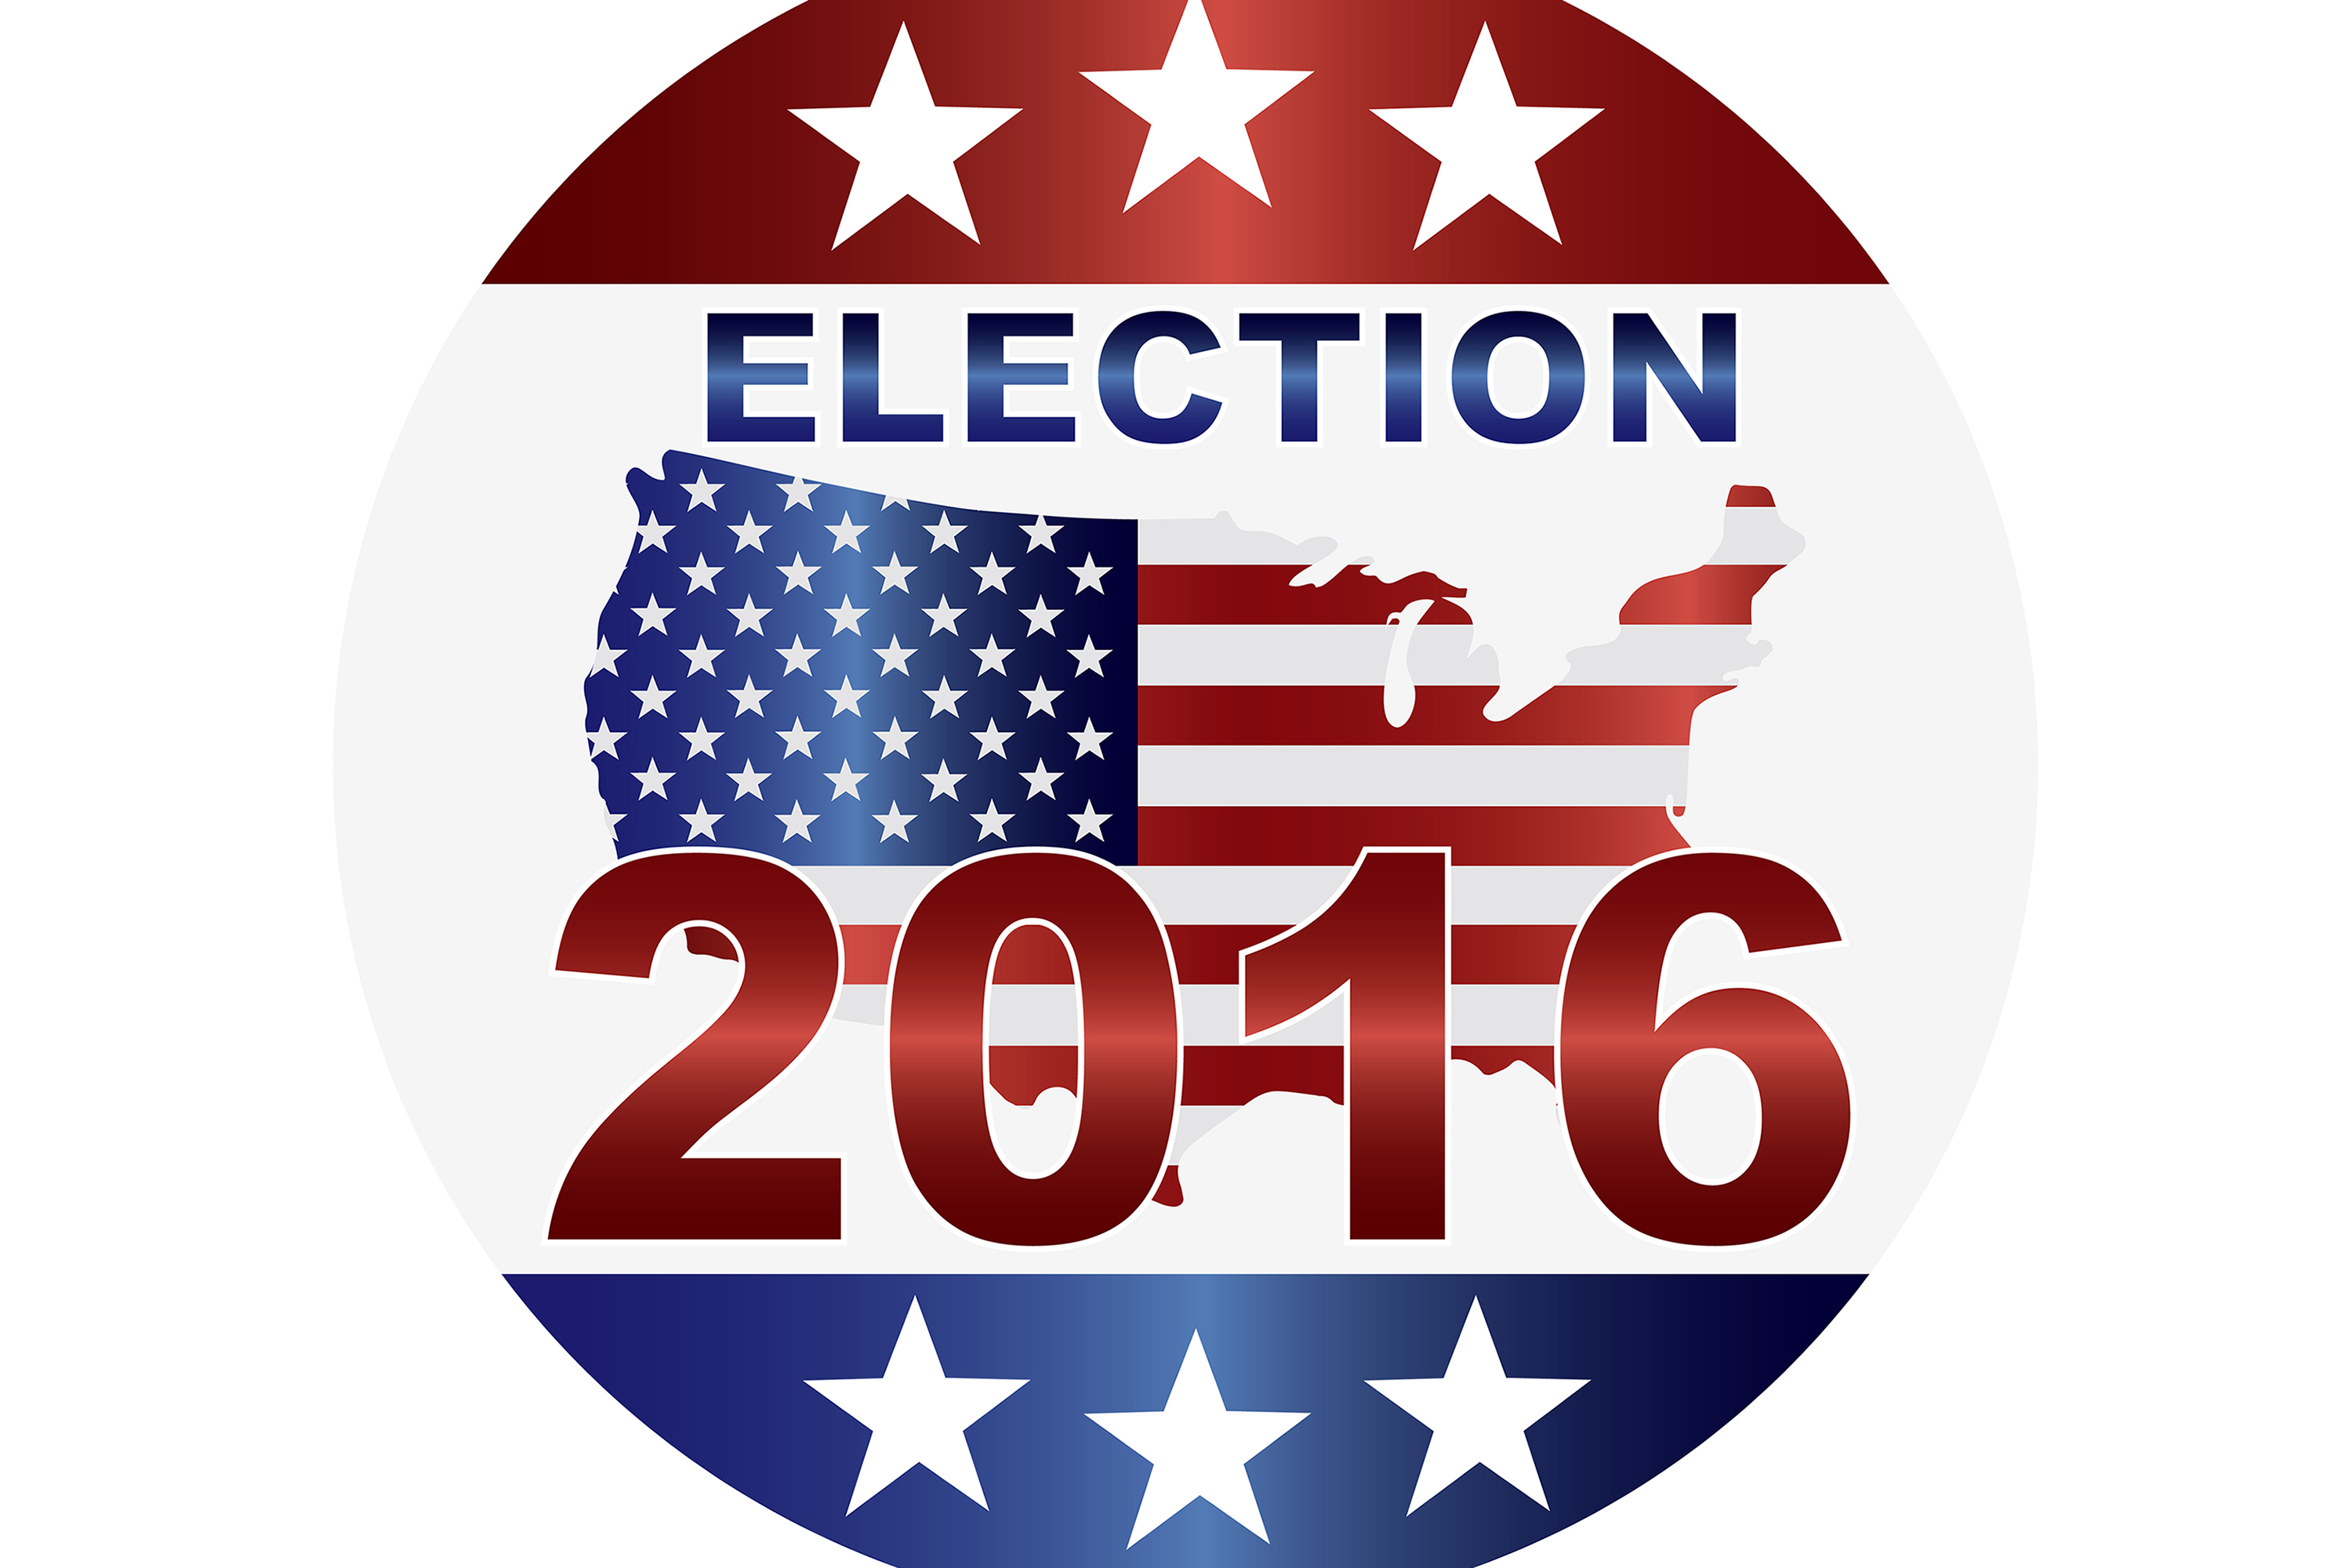 election 2016 on with us flag map in map silhouette istock image